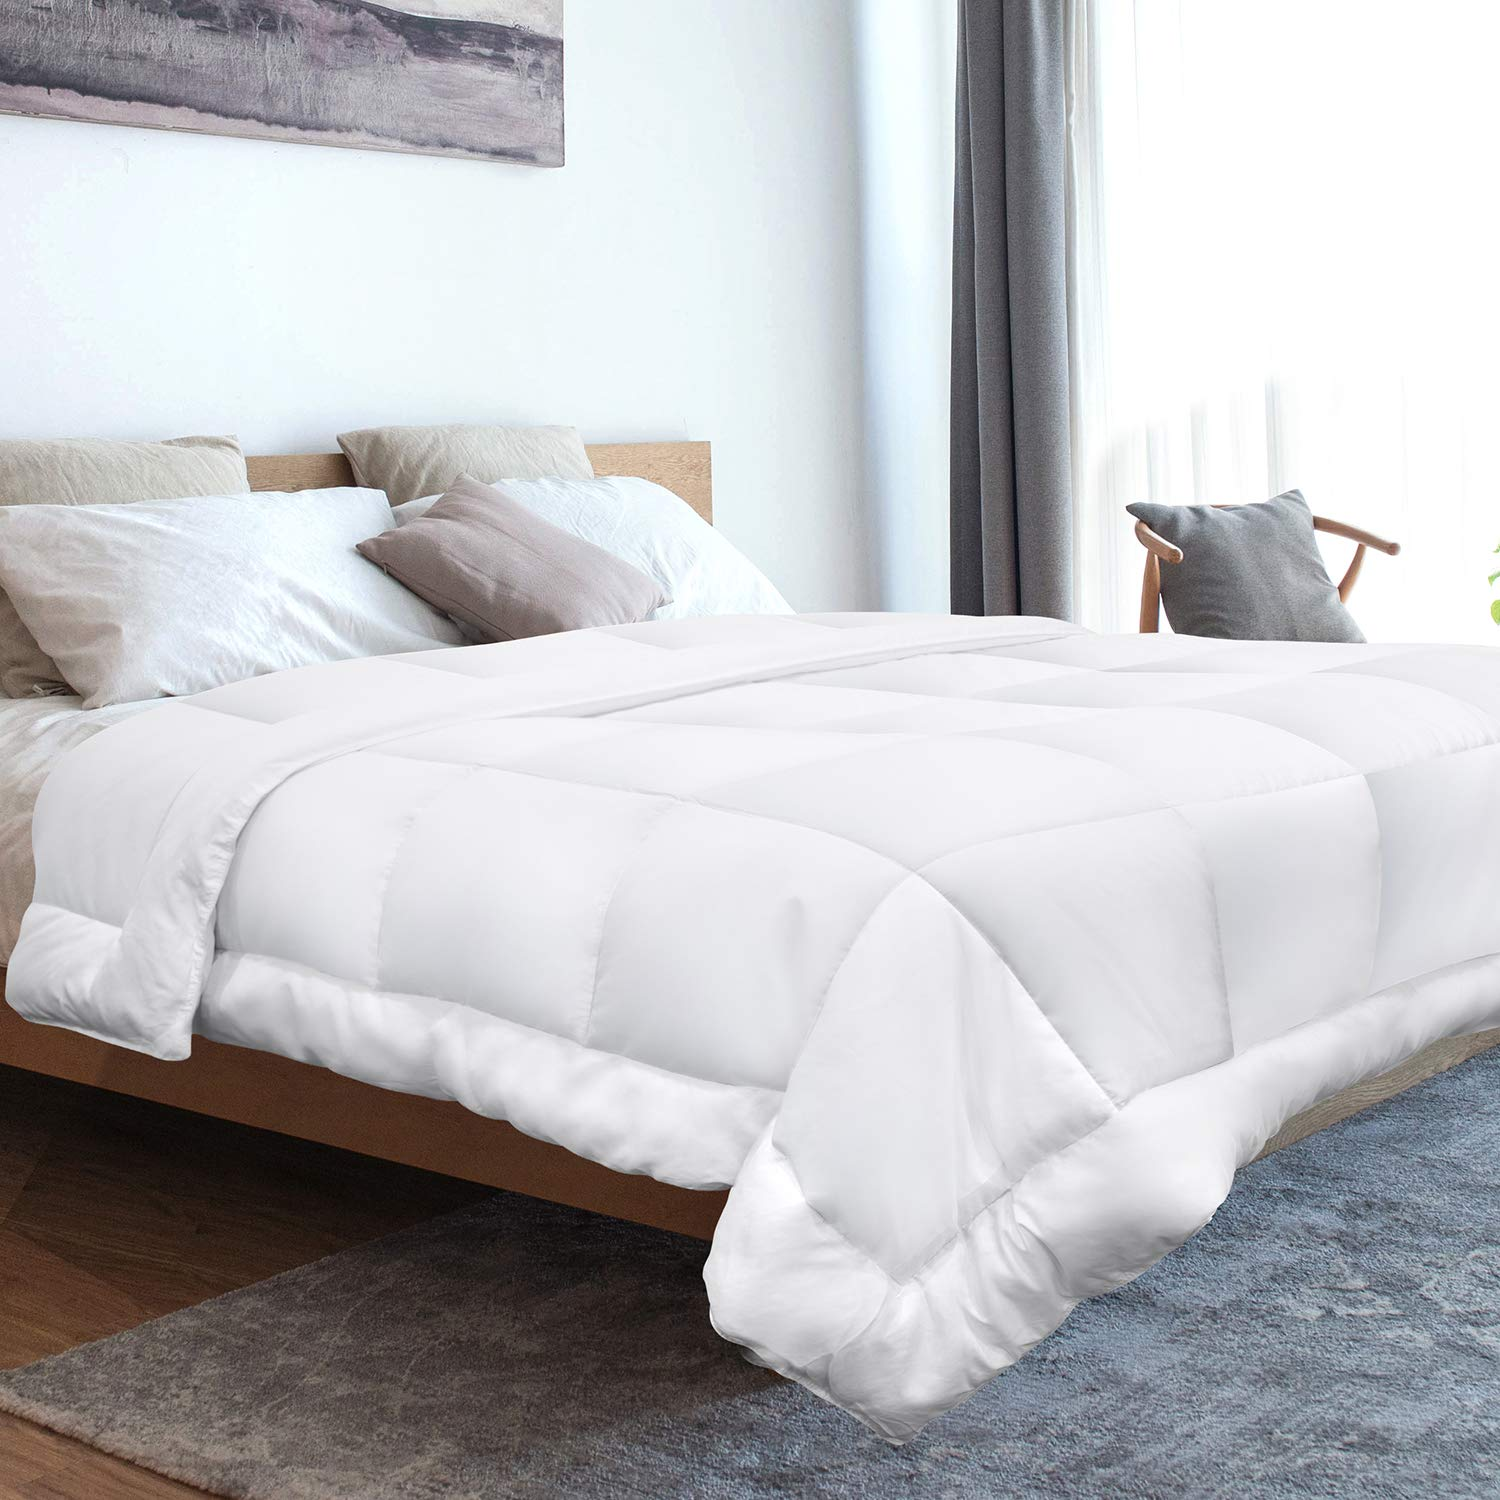 Adoric Queen Size Down Alternative Quilted Comforter, Microfiber 230T Fiberfill Comforter Hypoallergenic Soft for Human Skin, Dust Mite Resistant and Comfortable (White, Queen)